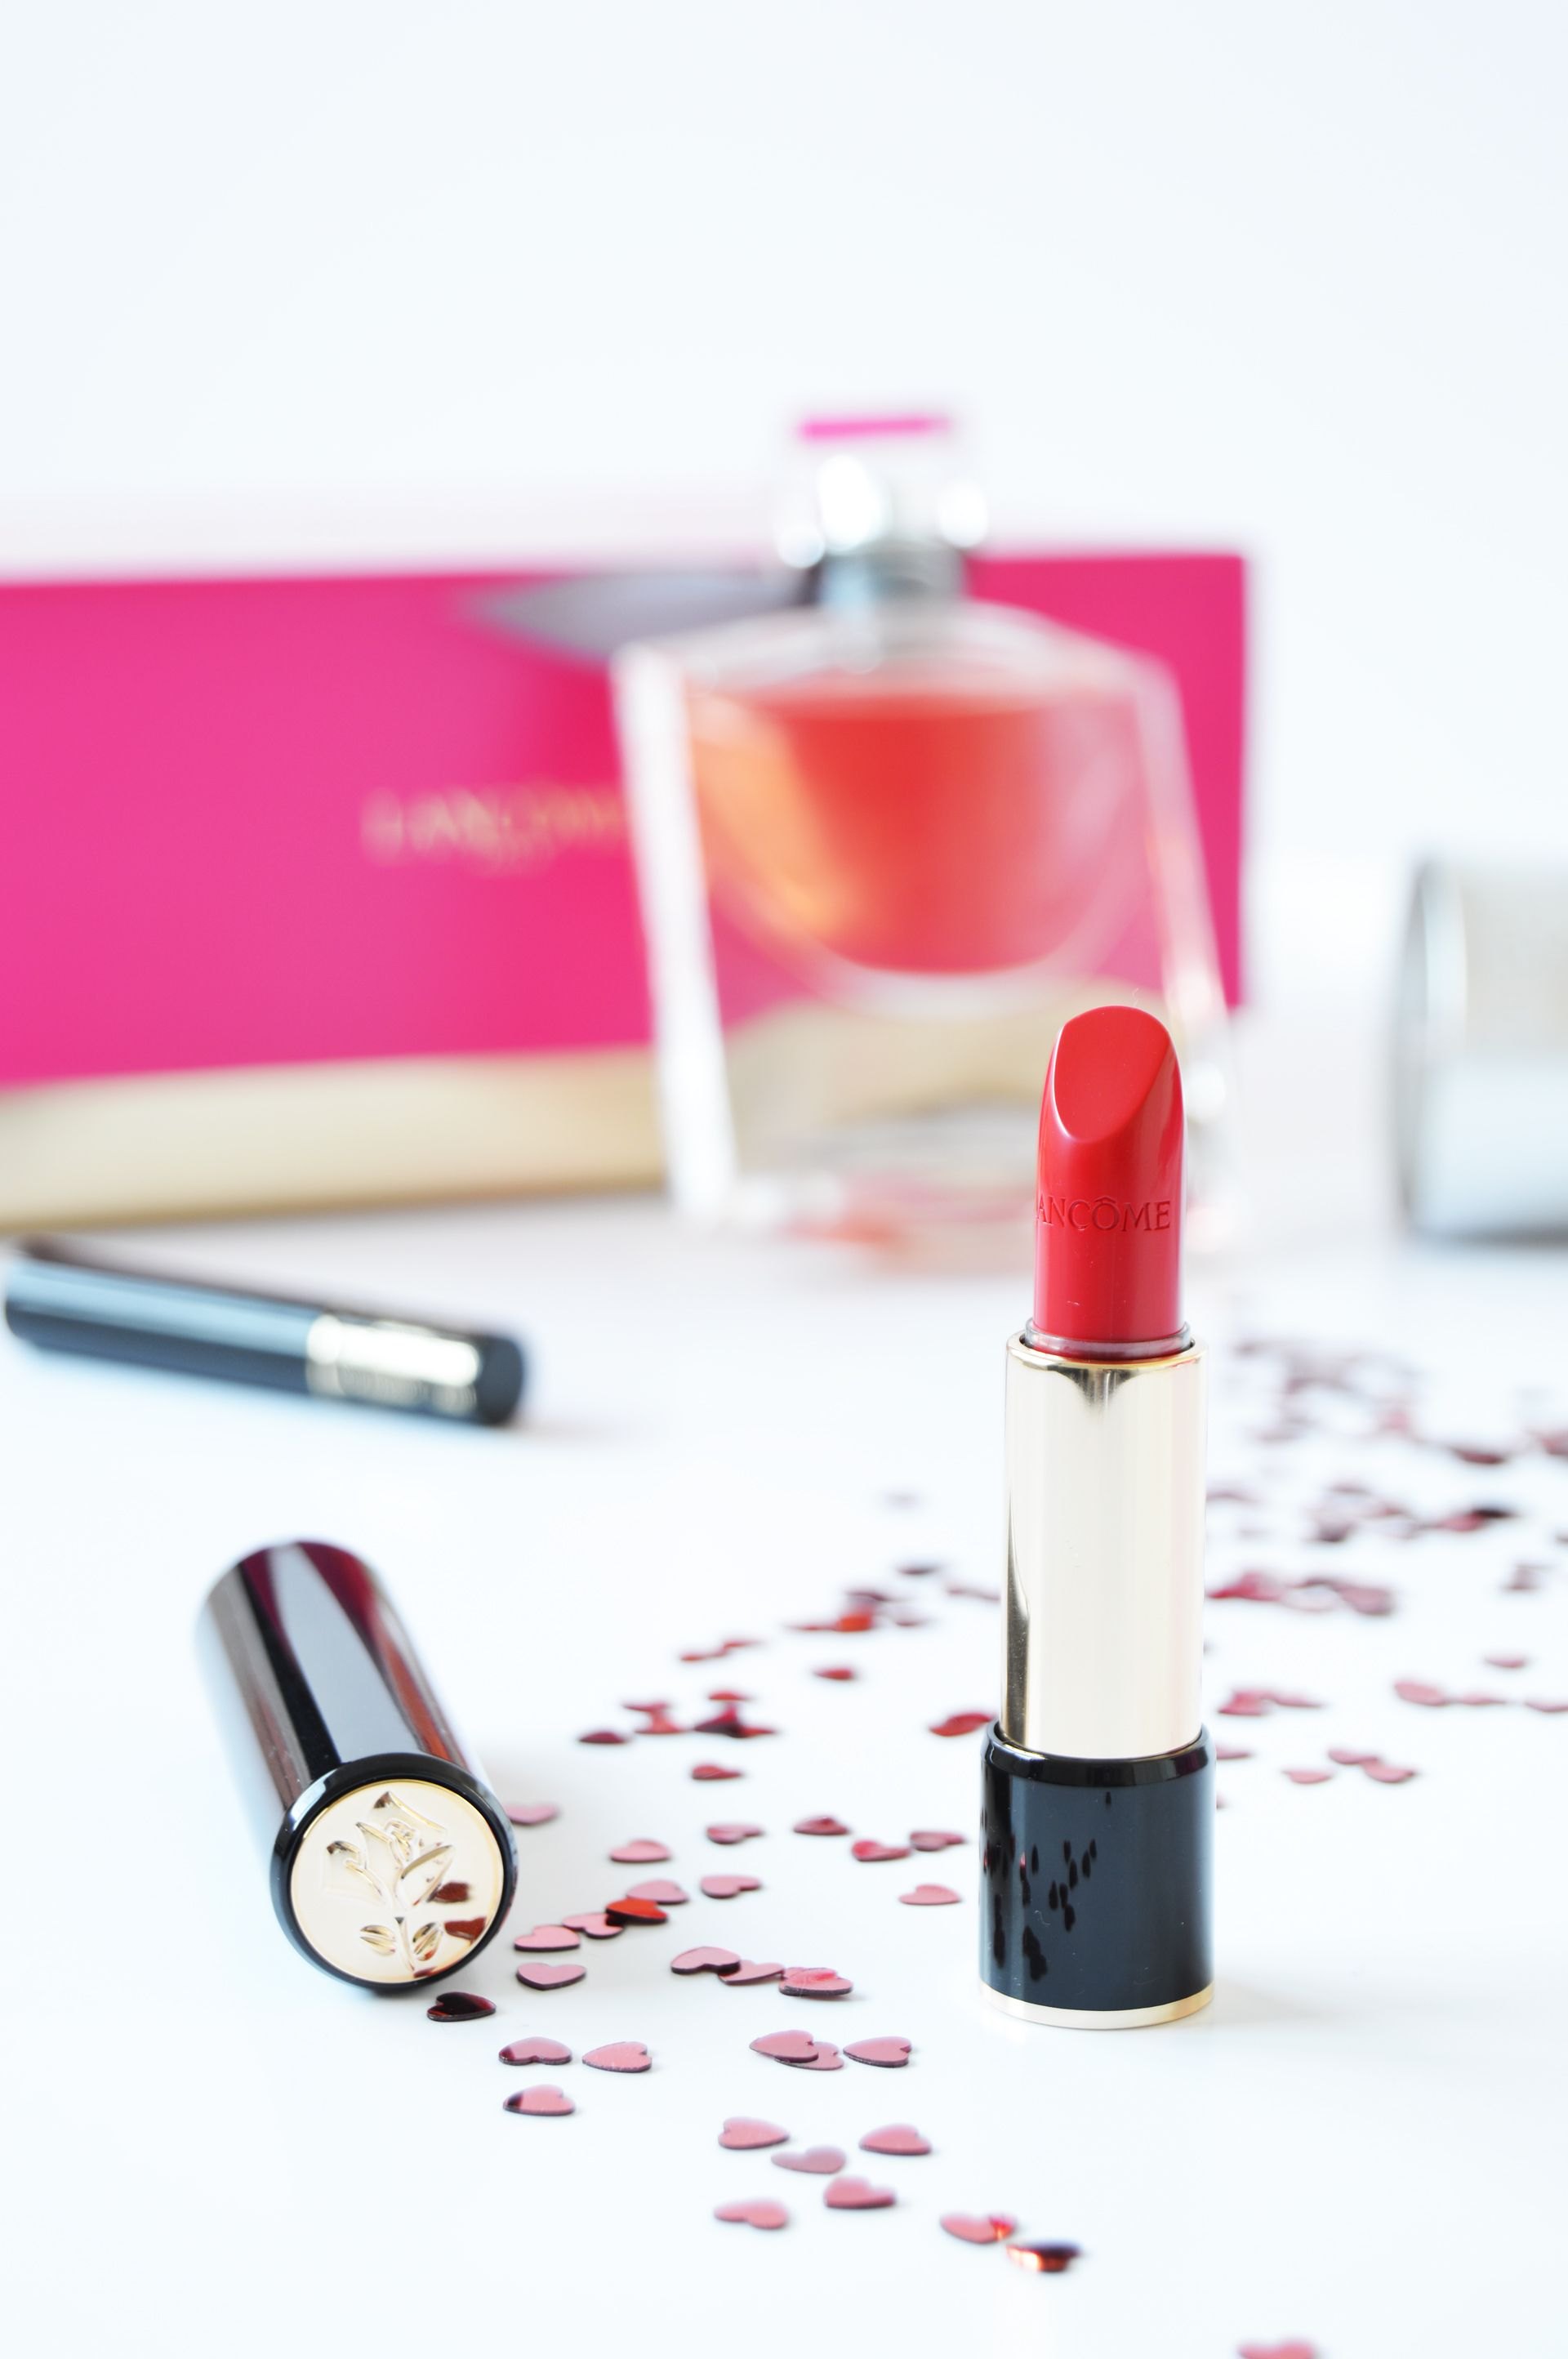 Lancôme L'Absolu Rouge 132 Caprice has cream finish. 132 Caprice is a true red with slight blue undertone. If you're looking for a red lipstick which could suit every complexion then this is what you need.